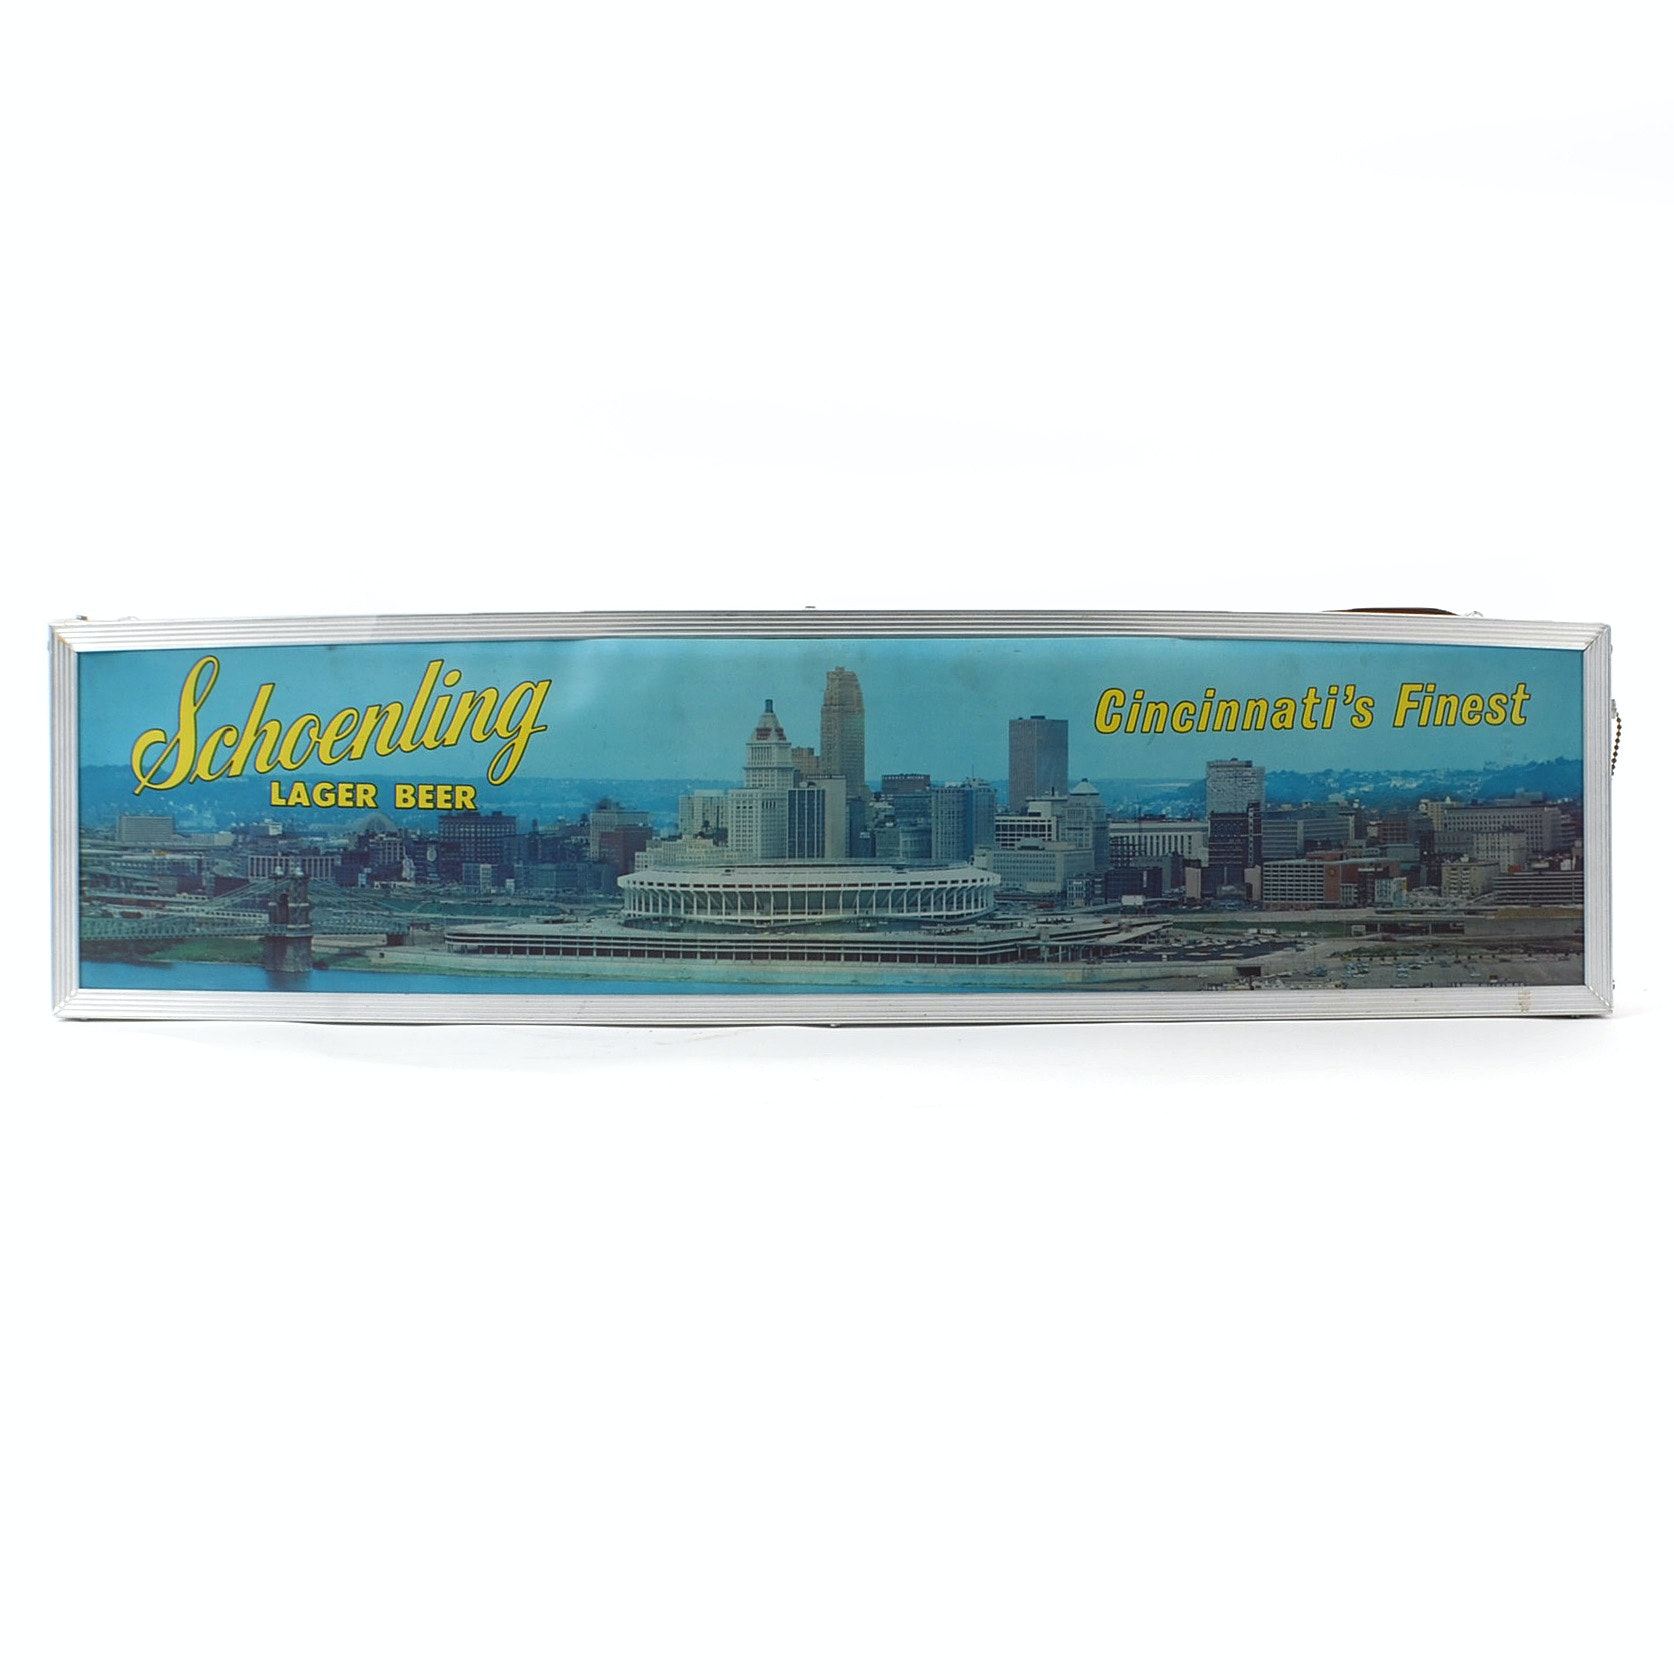 Schoenling Beer/Riverfront Lighted Sign